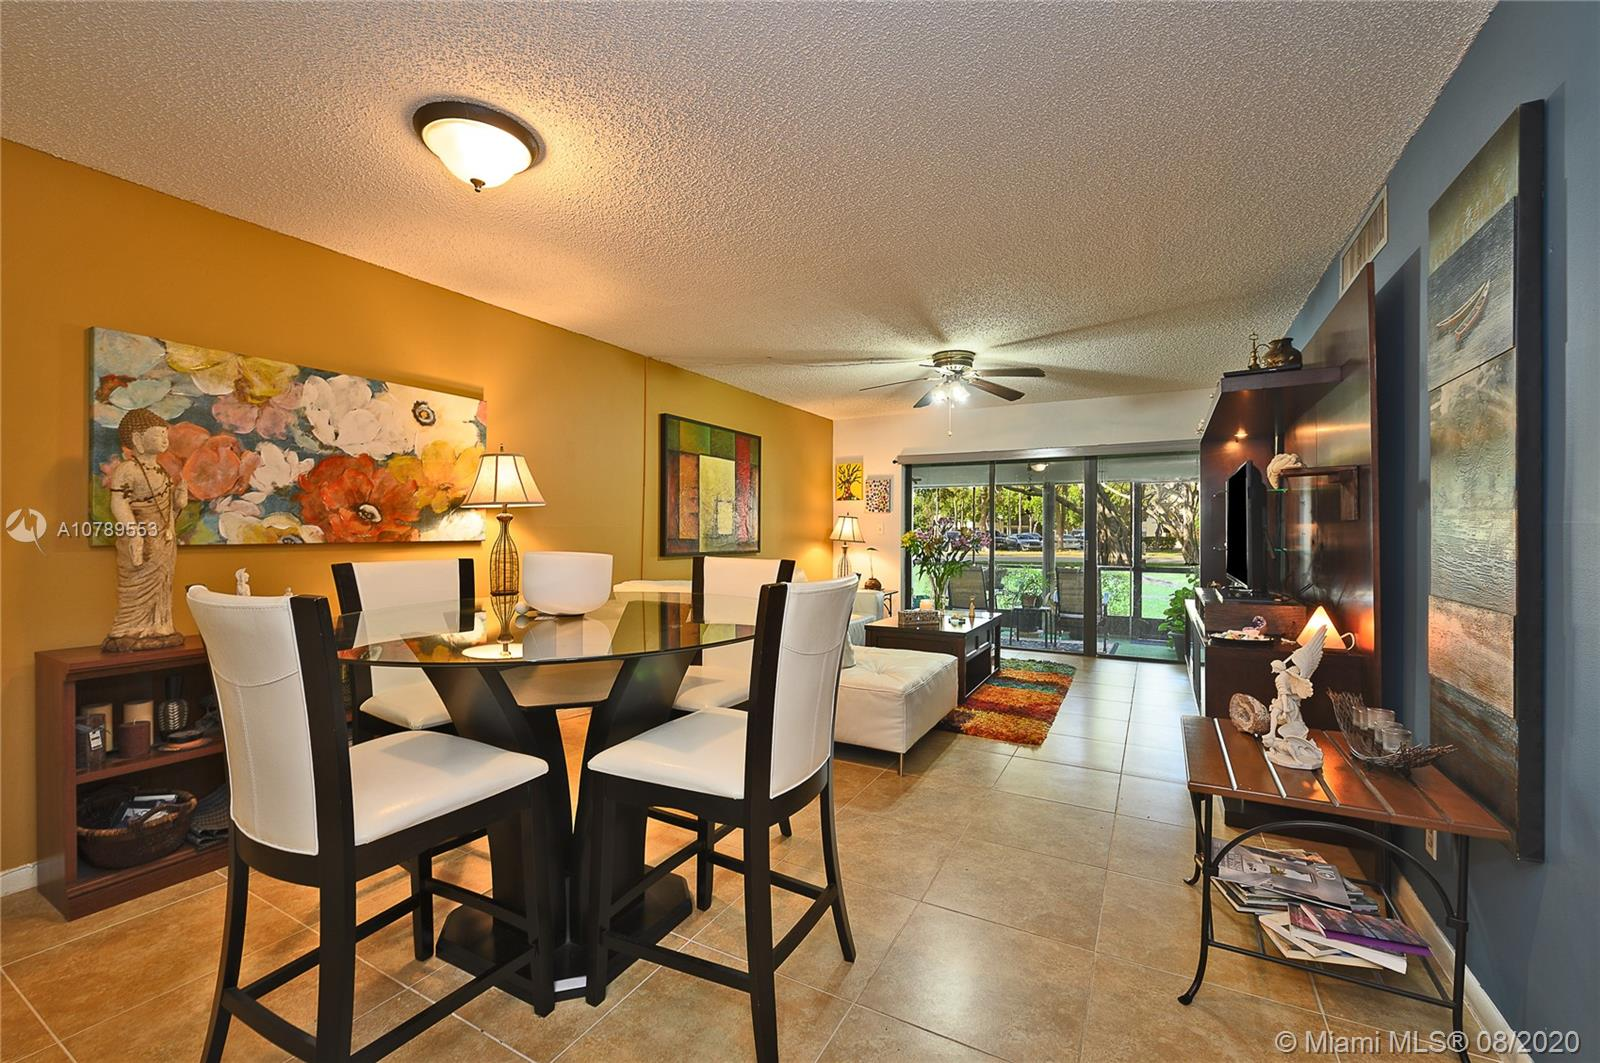 WOW!!! Very well kept unit in the prestigious community of Cypress Bend in Palm Aire. Corner unit with patio and backyard area. Great amenities including pools, tennis courts, shuffleboards and much more. Lots of guest parking available that can be used to park a second vehicle. Very responsive onsite association. This unit has been cared for and is very well maintained, lots of potentials to customize to your taste, no stairs, first-floor unit. Priced to sell!!!